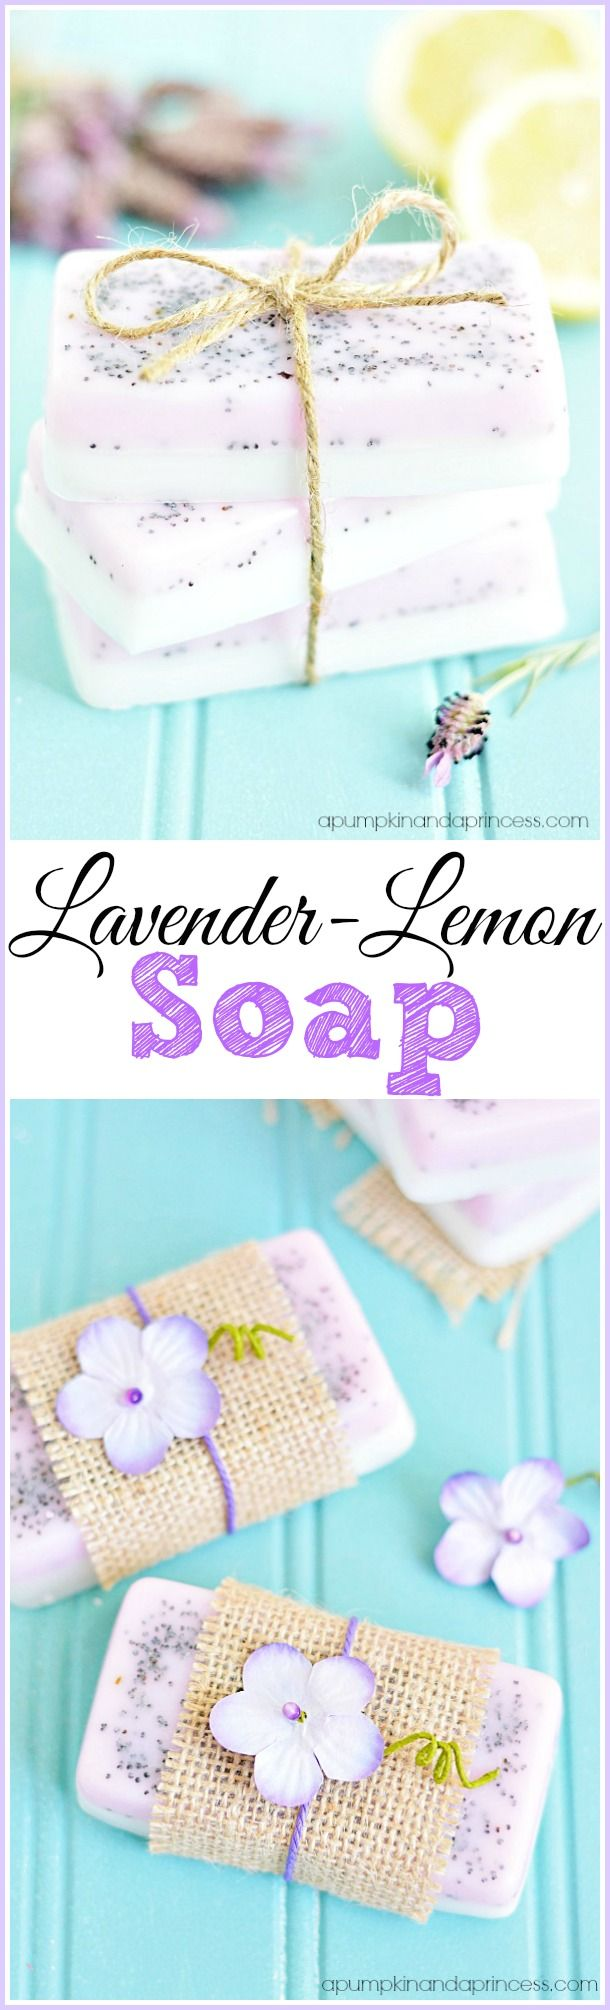 Homemade Lavender Lemon Soap - Mother's Day Gifts